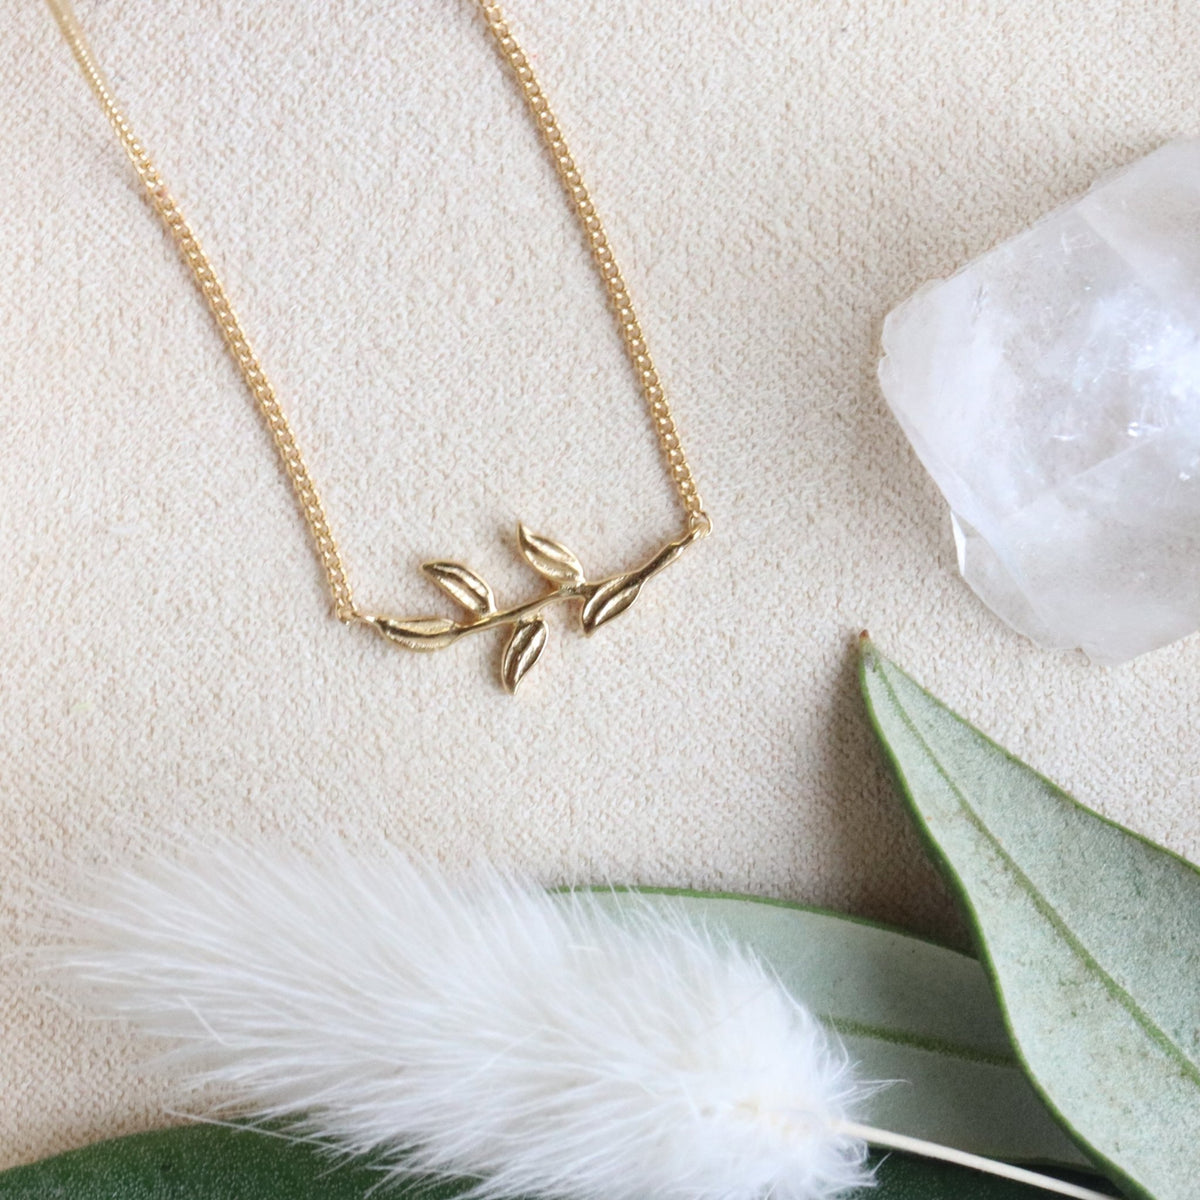 FRAICHE INSPIRE OLIVE LEAF NECKLACE - GOLD - SO PRETTY CARA COTTER